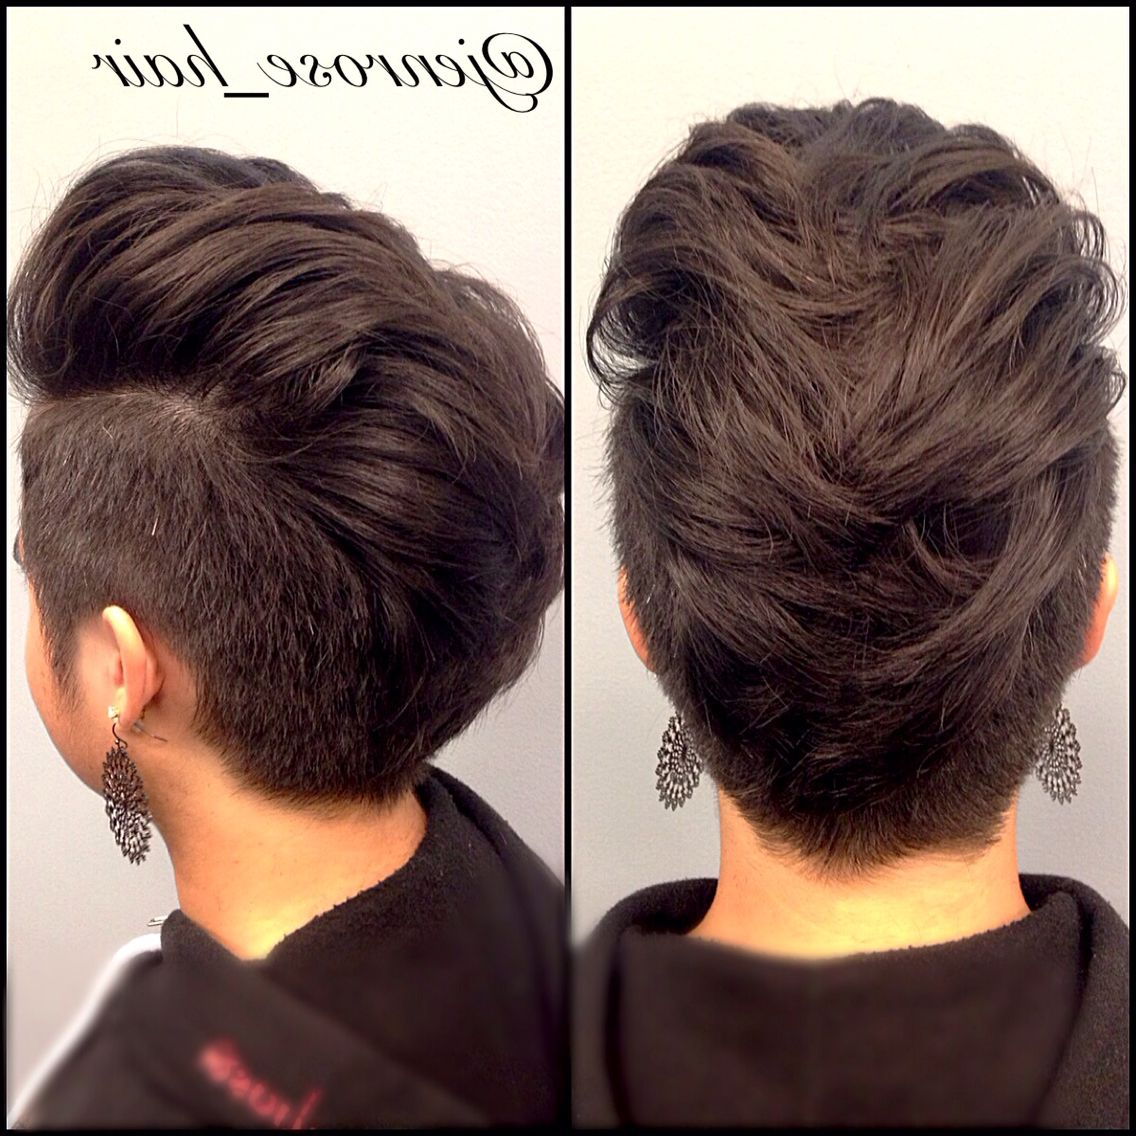 Women's Faux Hawk With Shaved Sides. Shorts Women's Hair Cut (View 2 of 20)